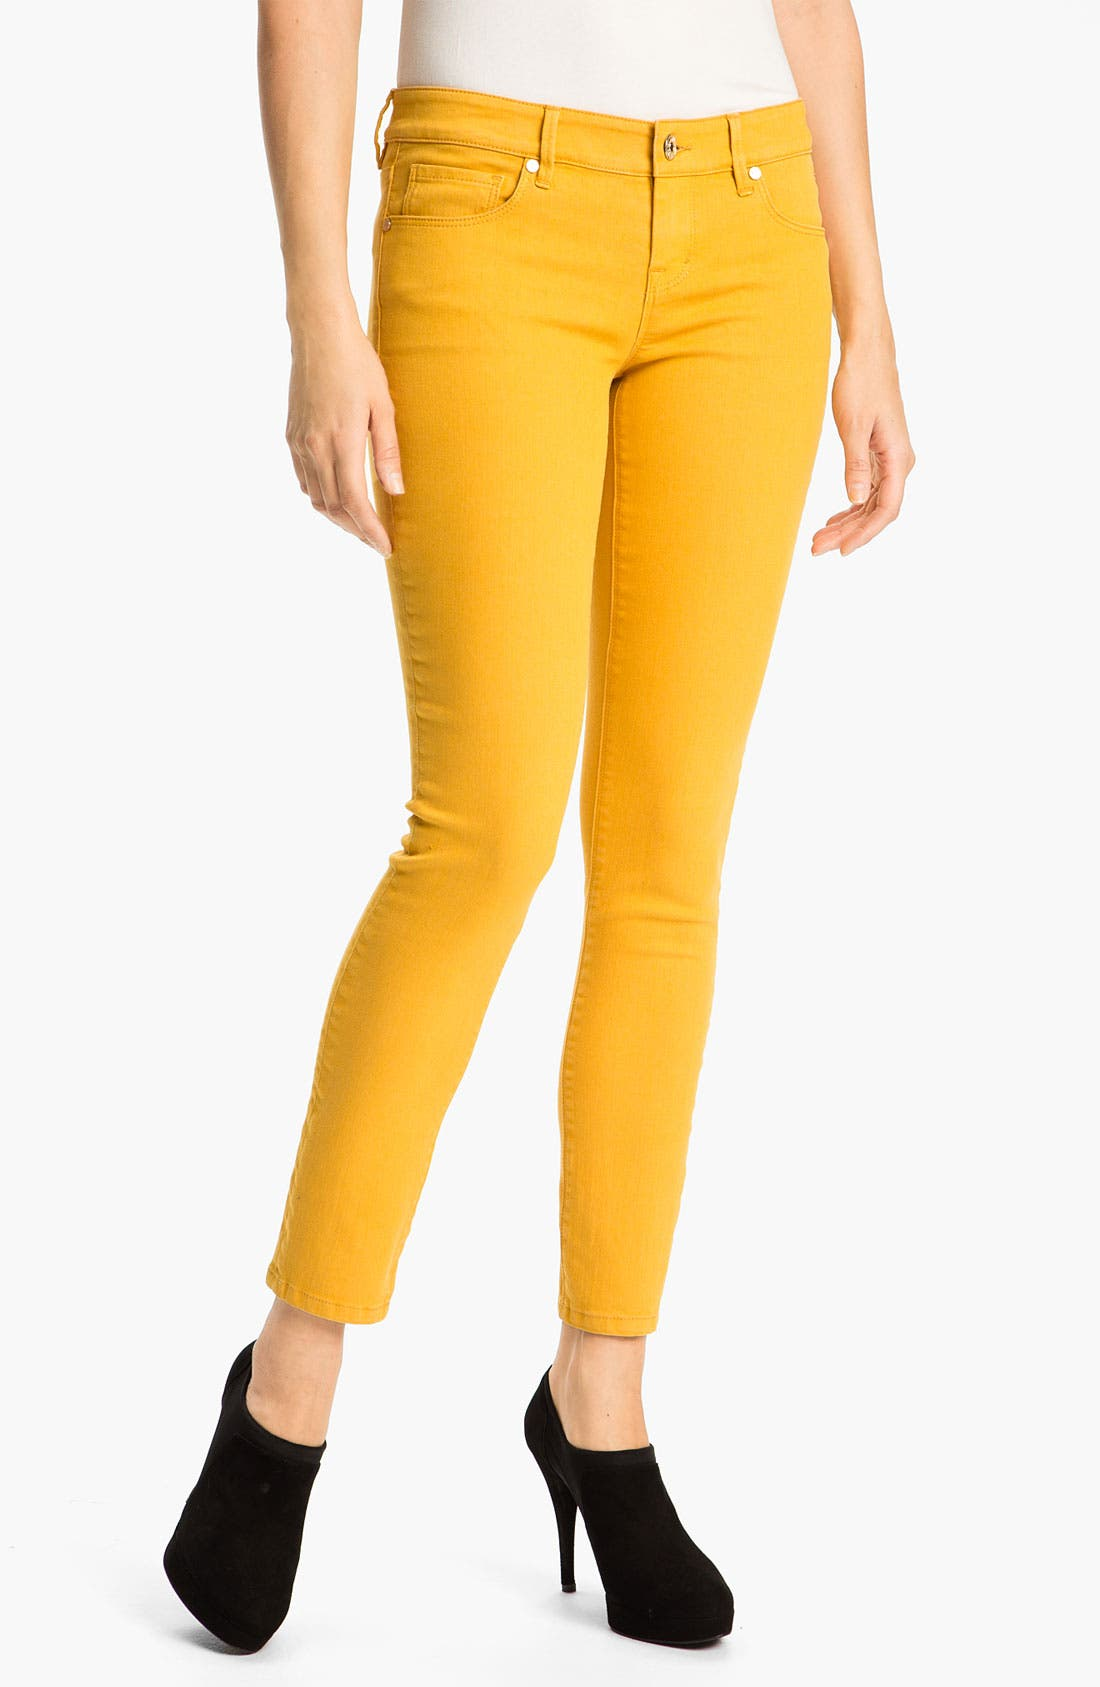 Alternate Image 1 Selected - Isaac Mizrahi Jeans 'Samantha' Colored Skinny Jeans